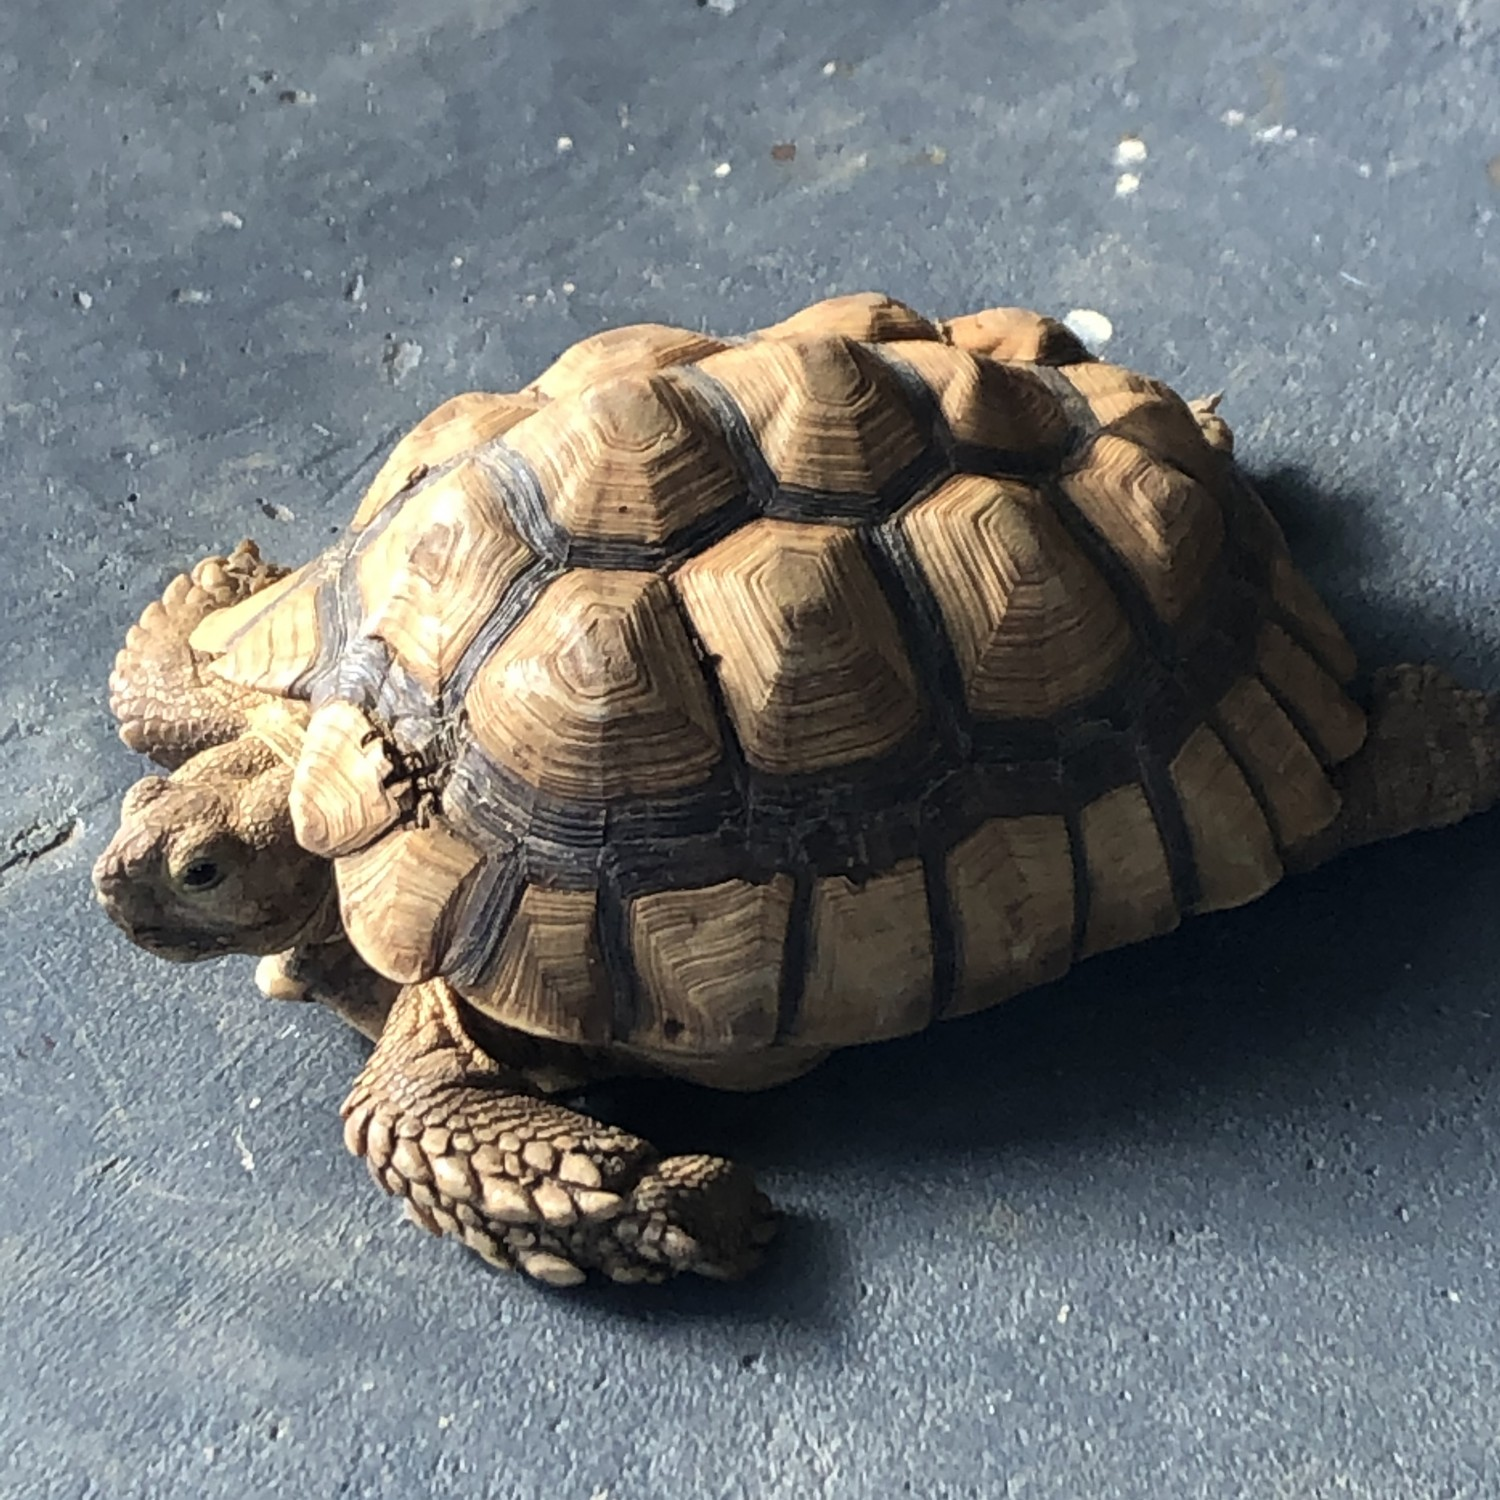 Dr. Dale's sulcata tortoise, Vic, on her lanai in Kailua - Dale Veterinary Mobile Clinic